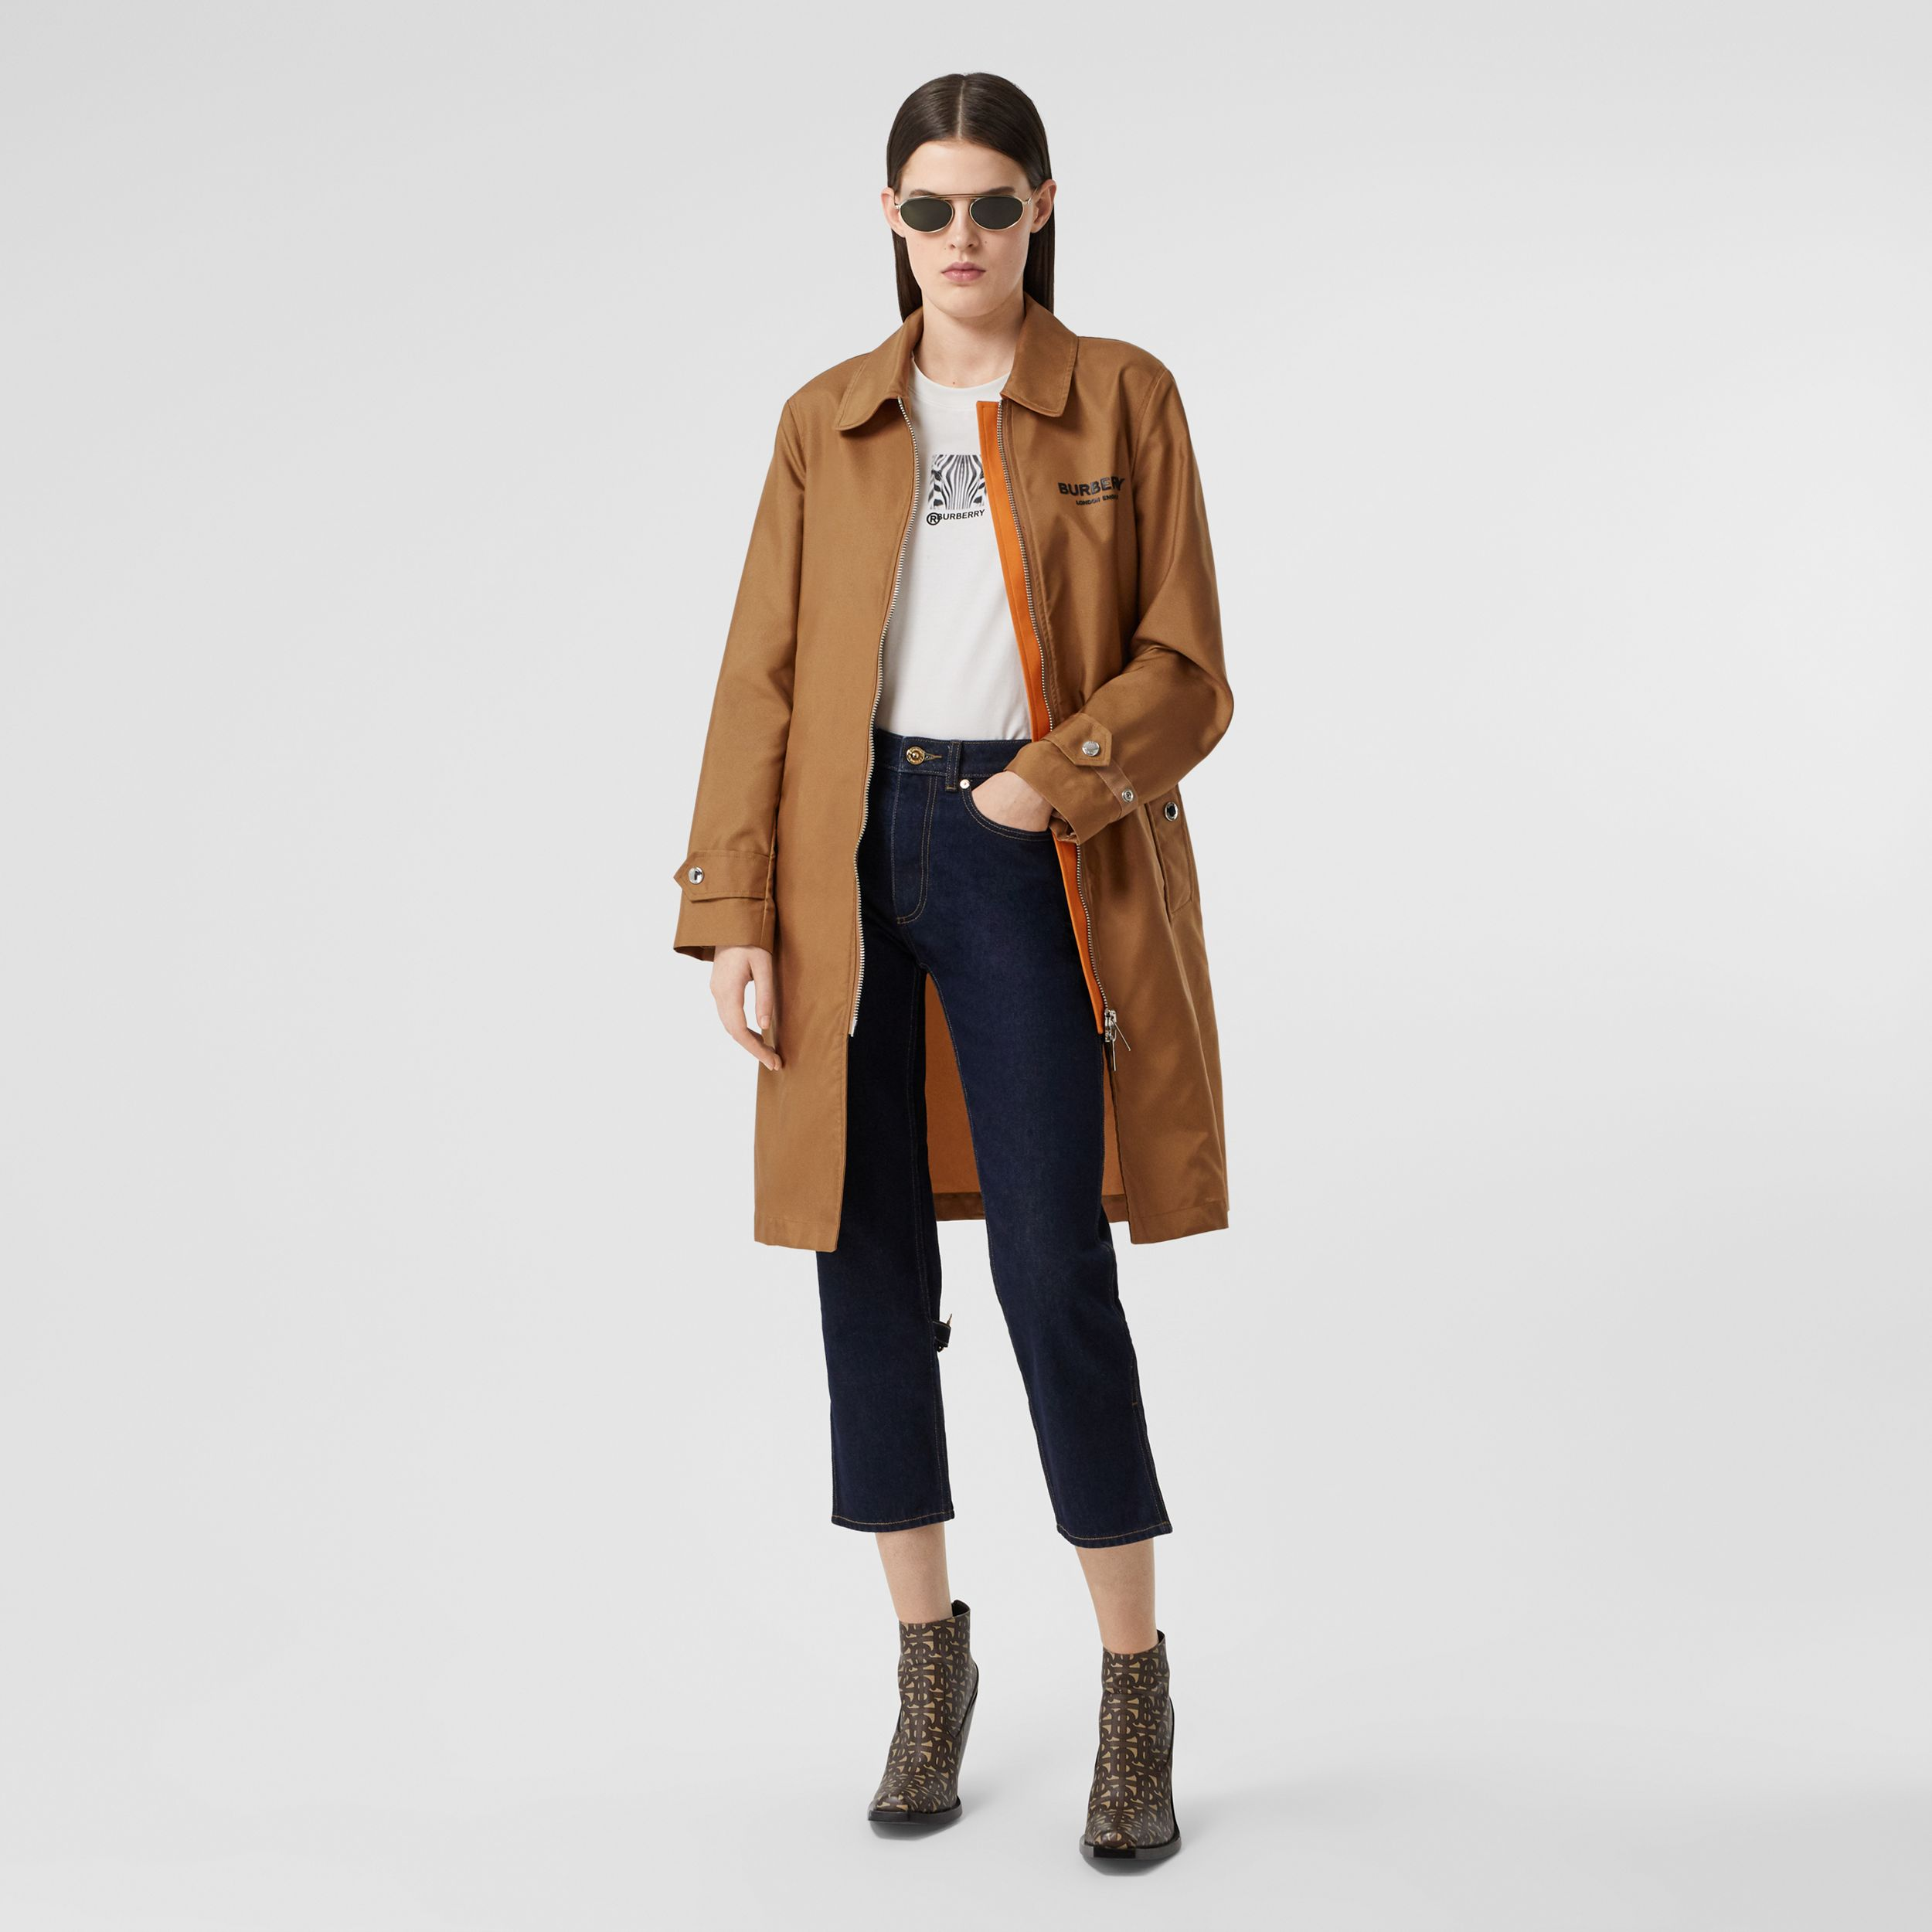 Logo Appliqué Technical Canvas Coat in Camel - Women | Burberry Hong Kong S.A.R. - 1